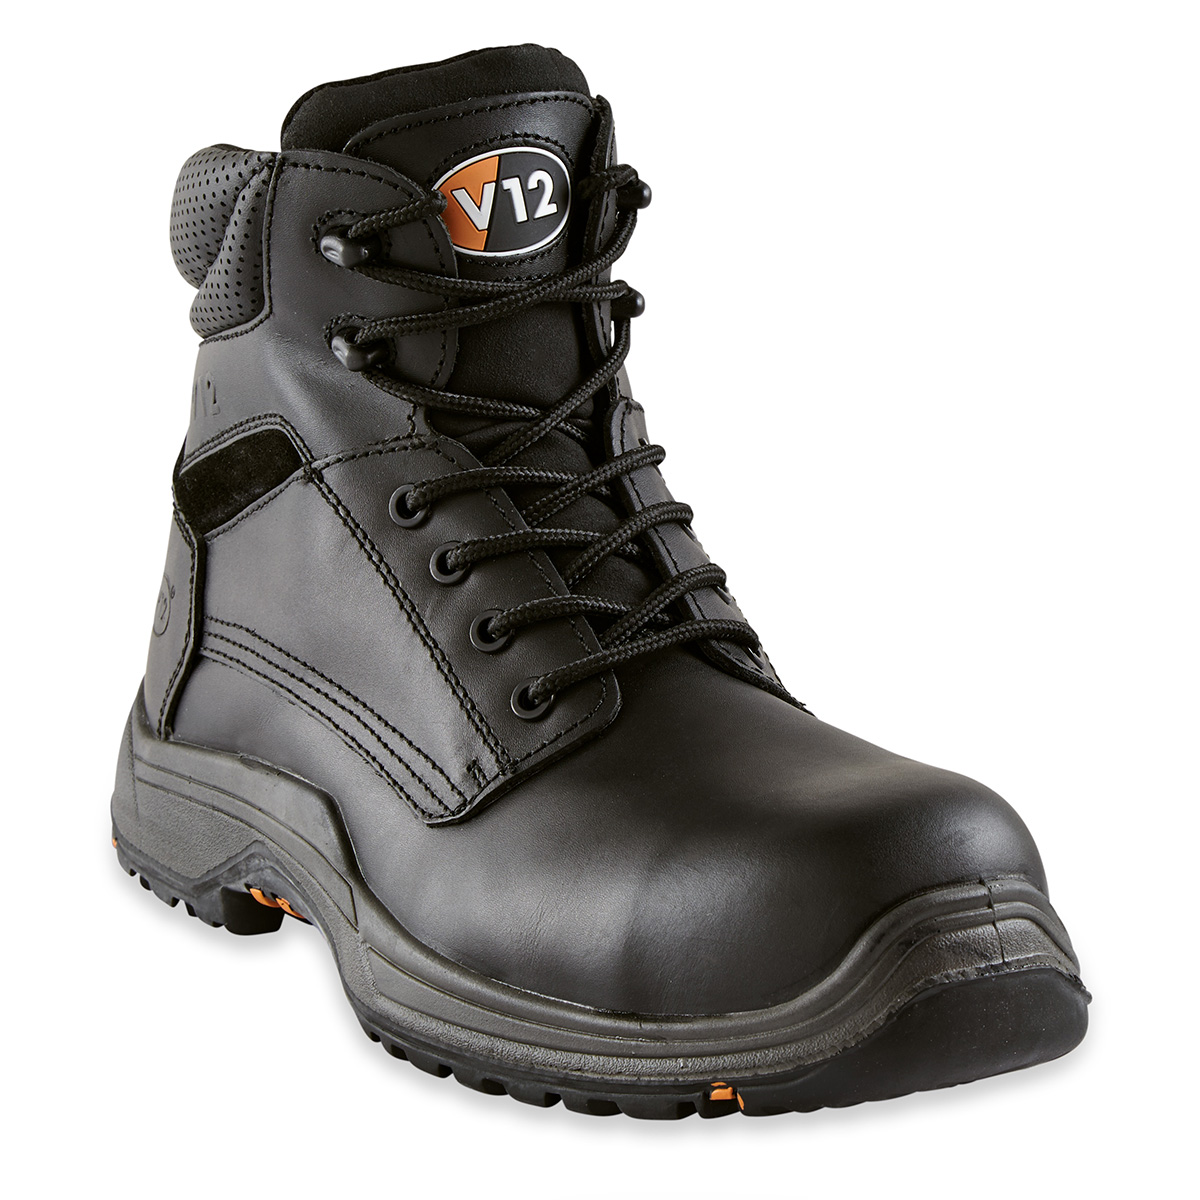 V12 Bison Wide Fit Safety Derby Boot